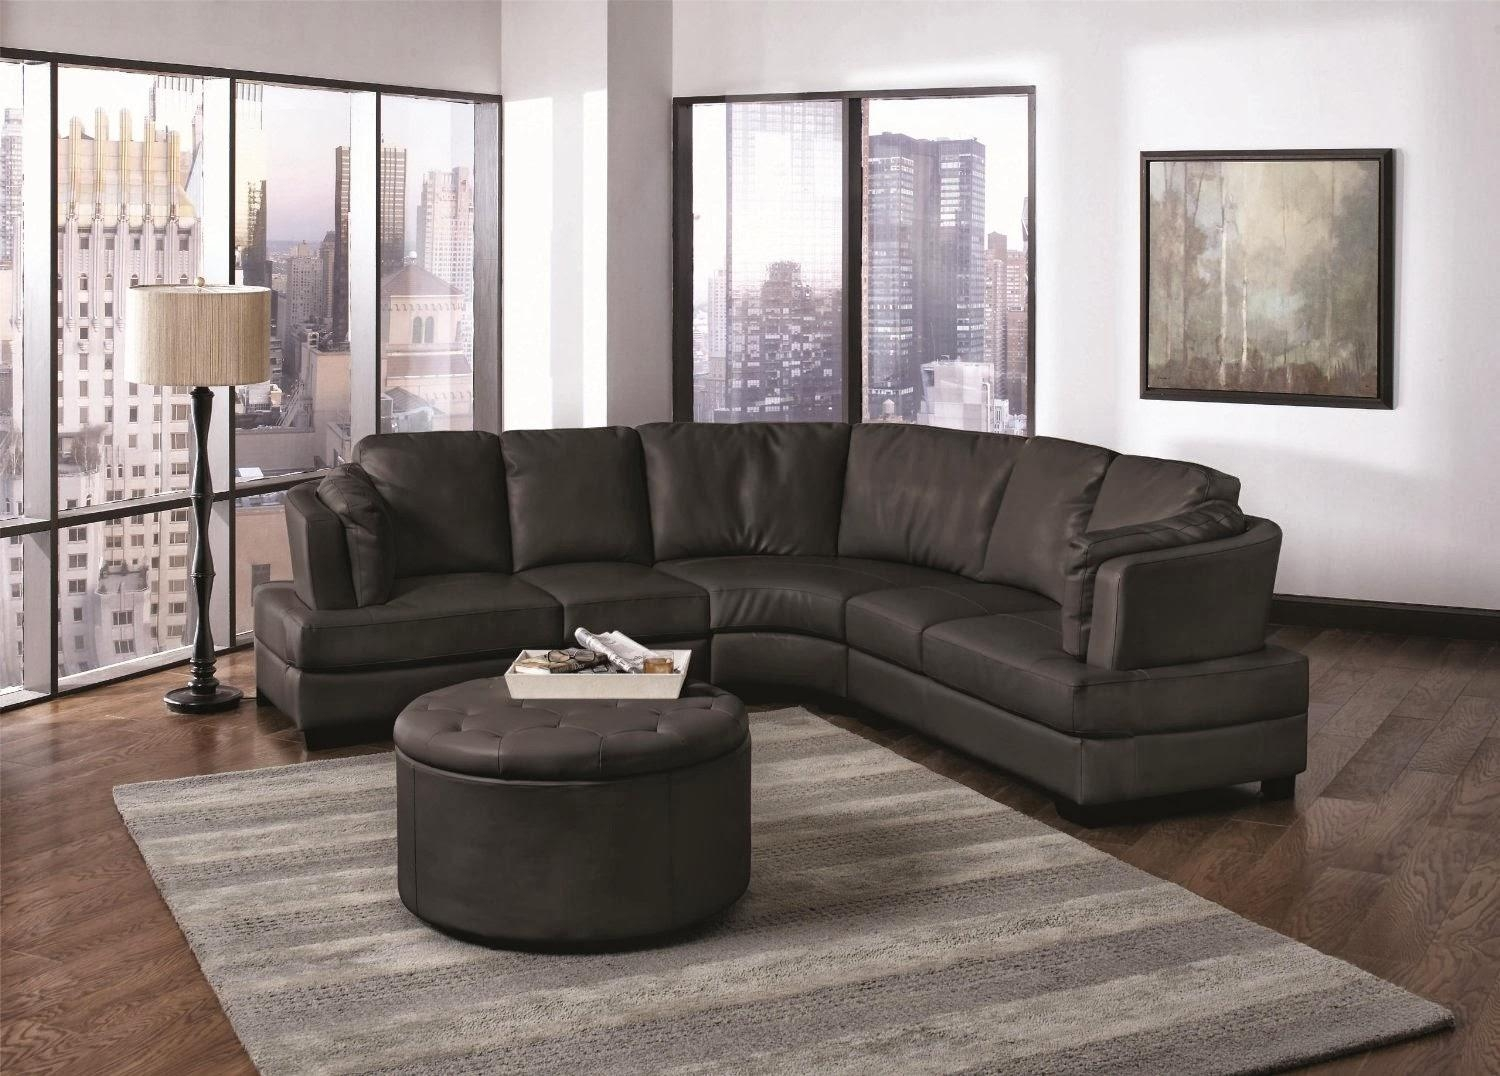 Furniture: Alluring Unique Curved Couches With Classic Design Home Throughout Semi Circular Sectional Sofas (View 12 of 20)